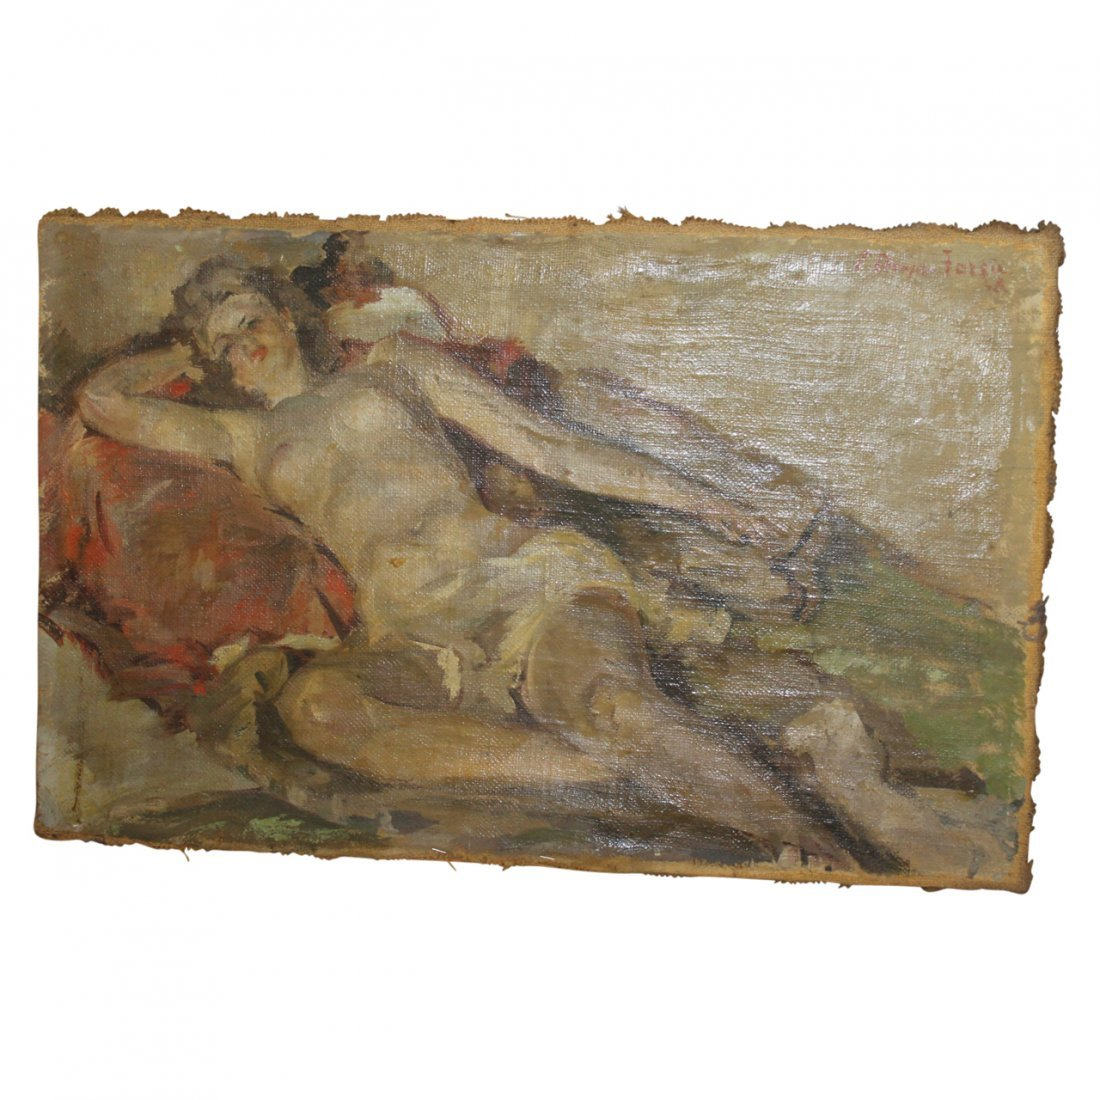 Painting of a Nude Woman by Forshu Druga